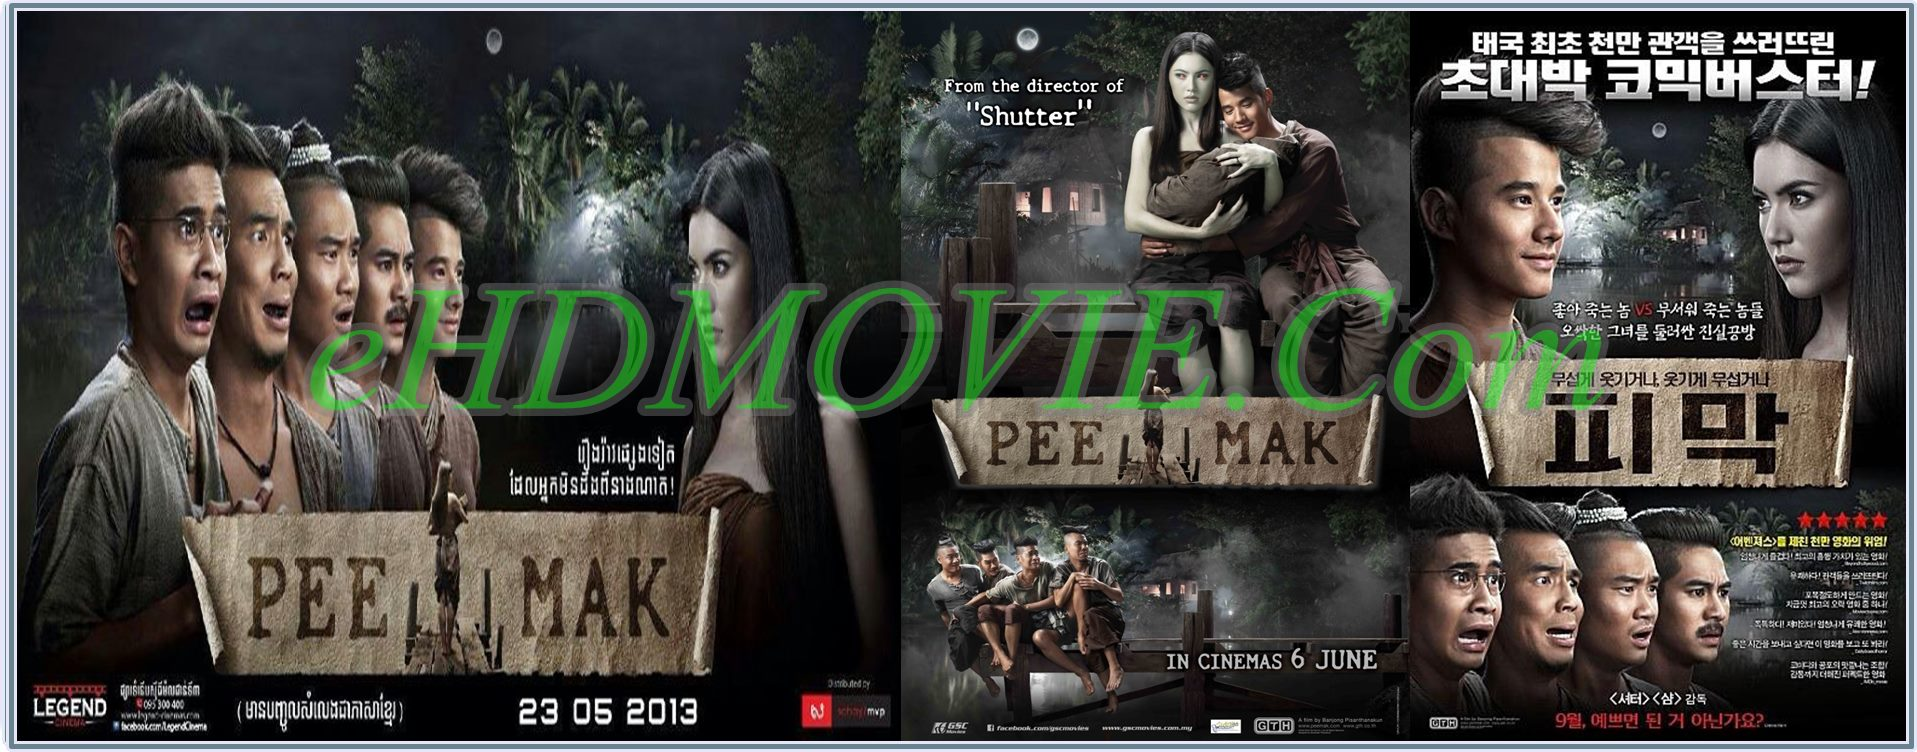 Pee Mak Phrakanong 2013 Full Movie Thailand 720p - 480p ORG BRRip 400MB - 800MB ESubs Free Download